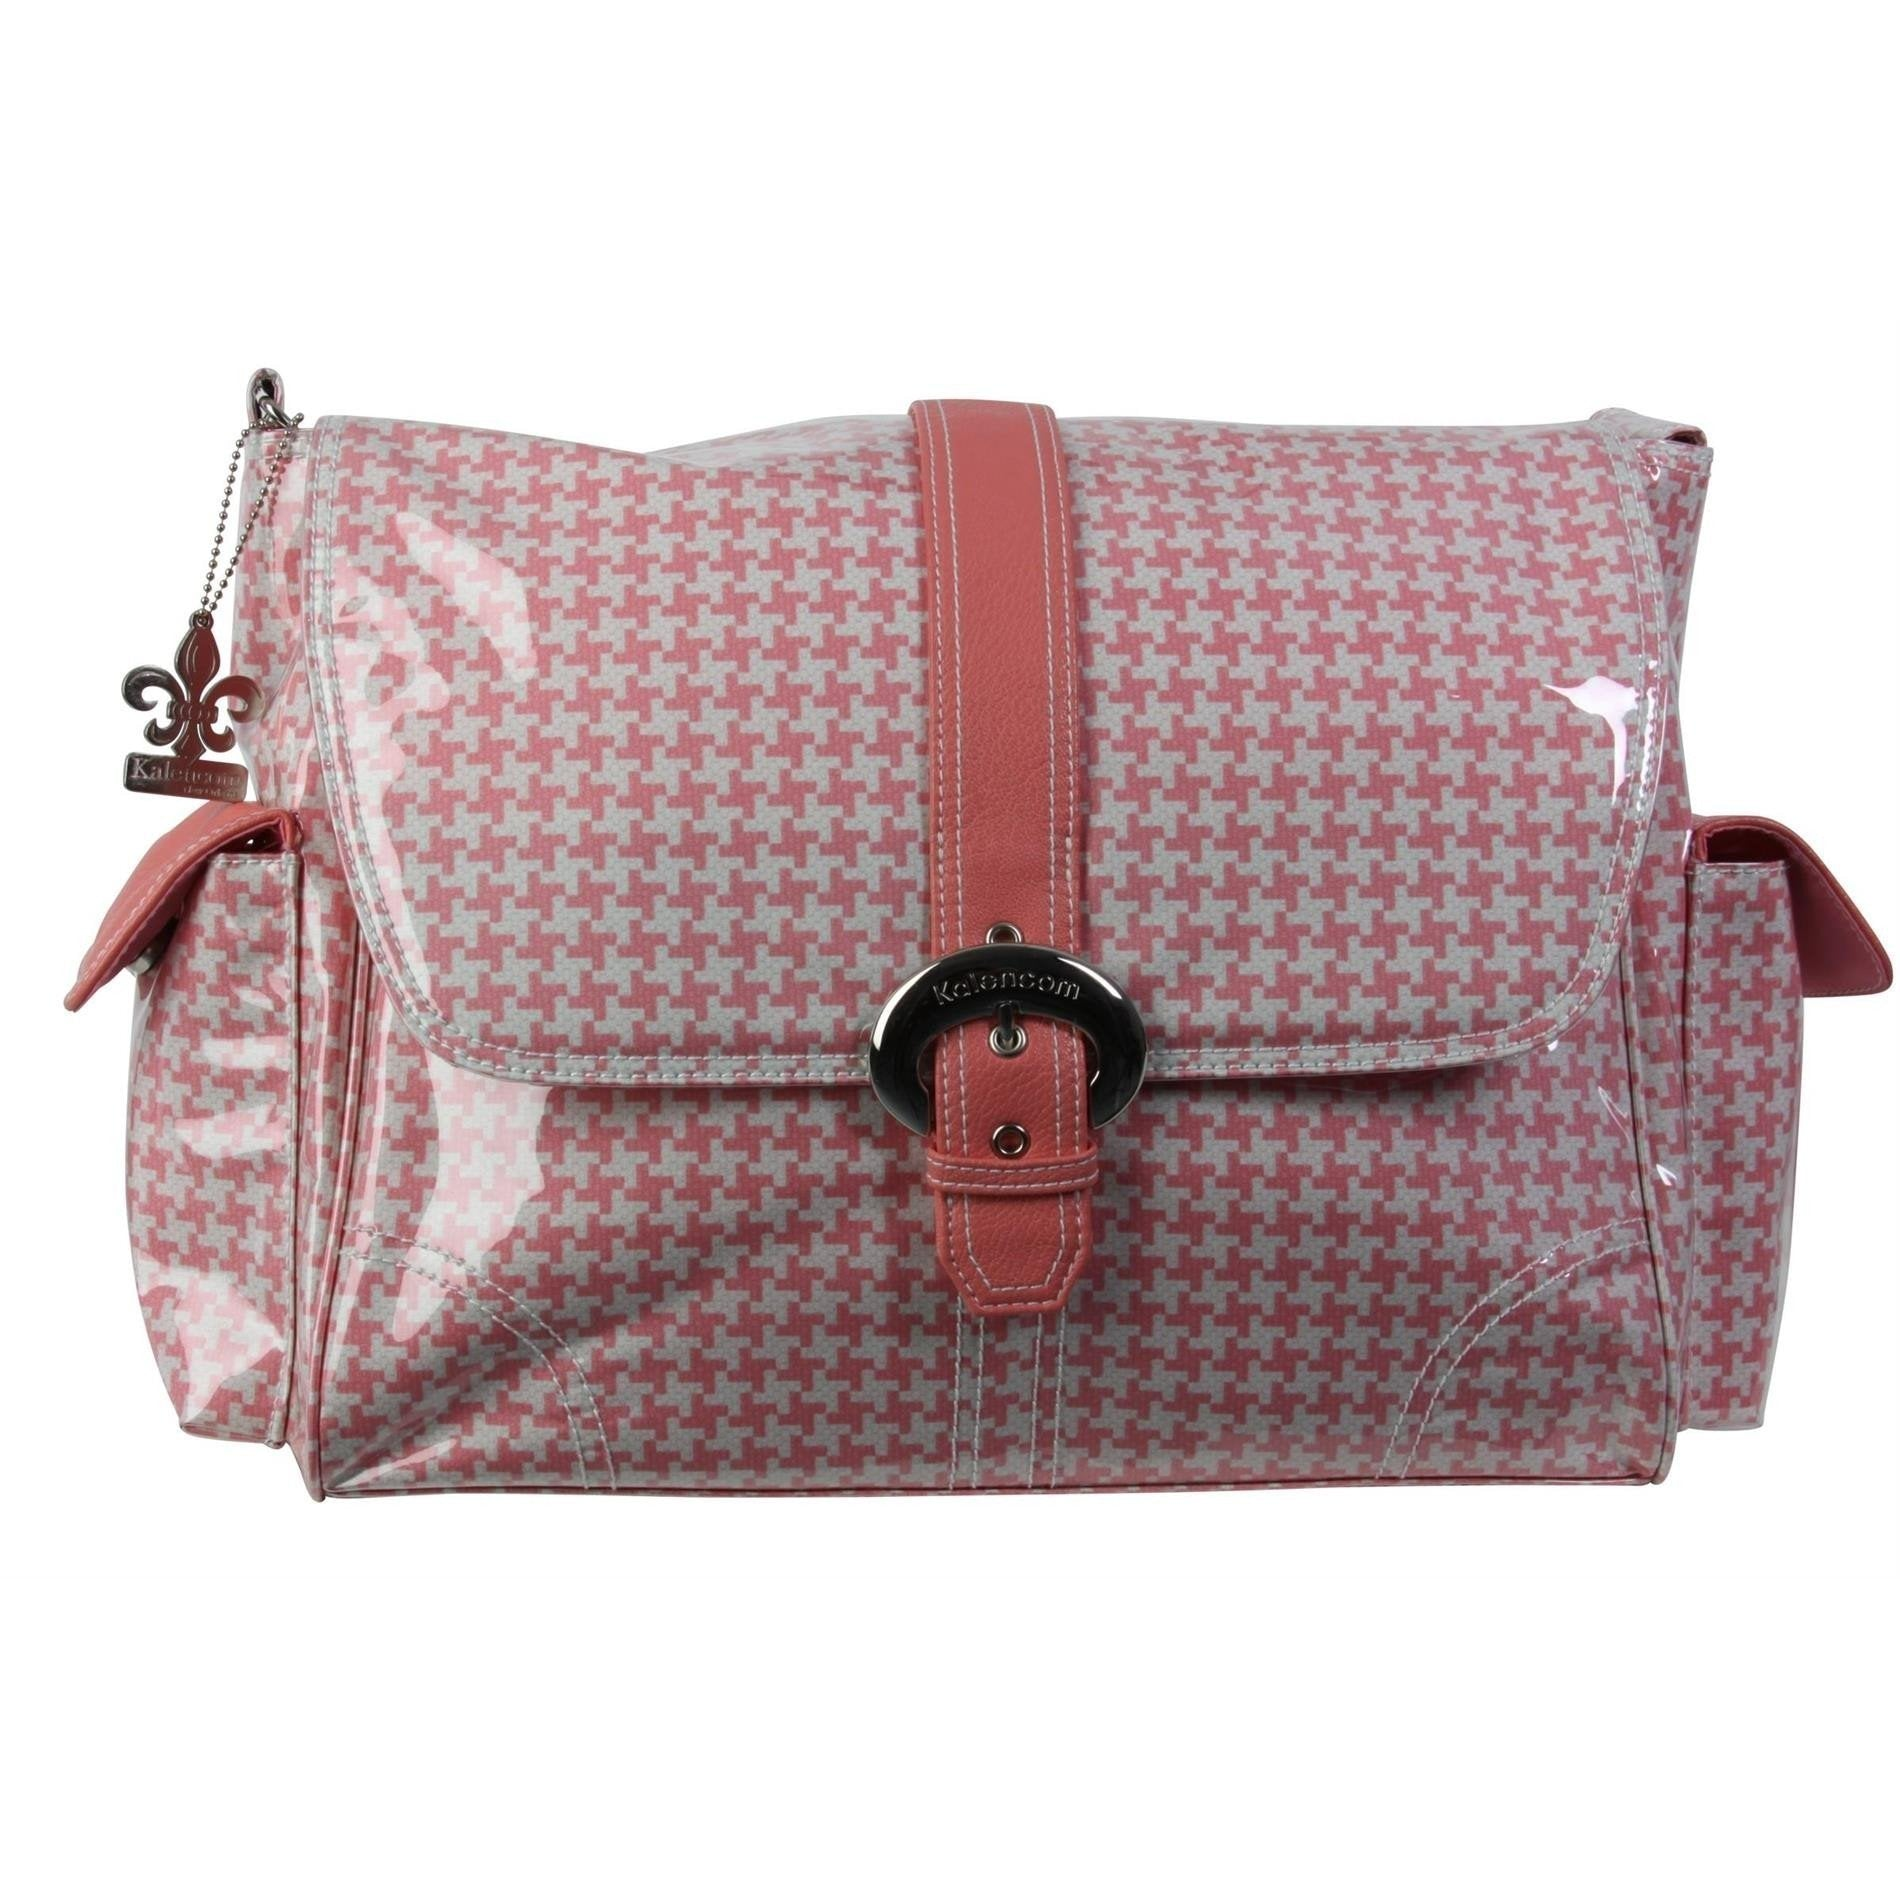 Houndstooth - Pink Laminated Buckle Diaper Bag | Style 2960 - Kalencom-Diaper Bags-Jack and Jill Boutique